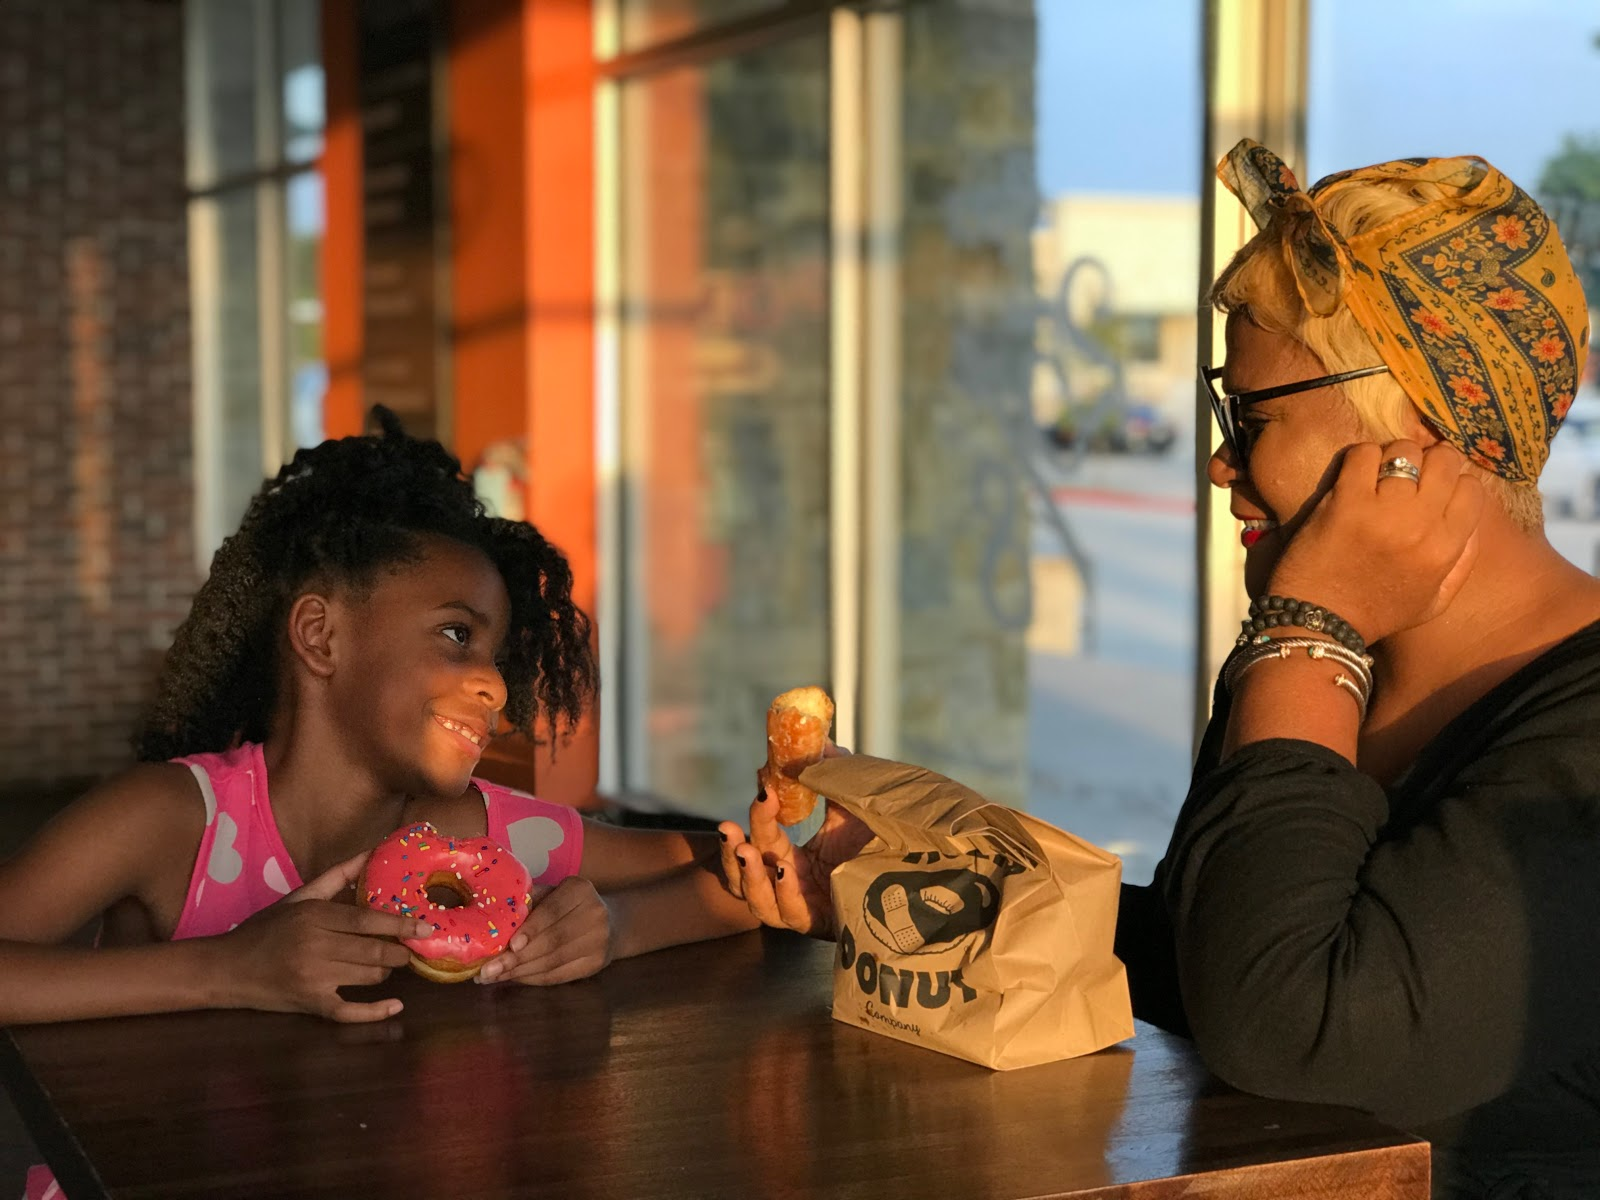 Image: Woman{ Tangie Bell and Daughter Moriah at Hurts Donuts in Frisco, Texas. Picture taken by Shacarey Martin. Seen First  on Bits and Babbles blog